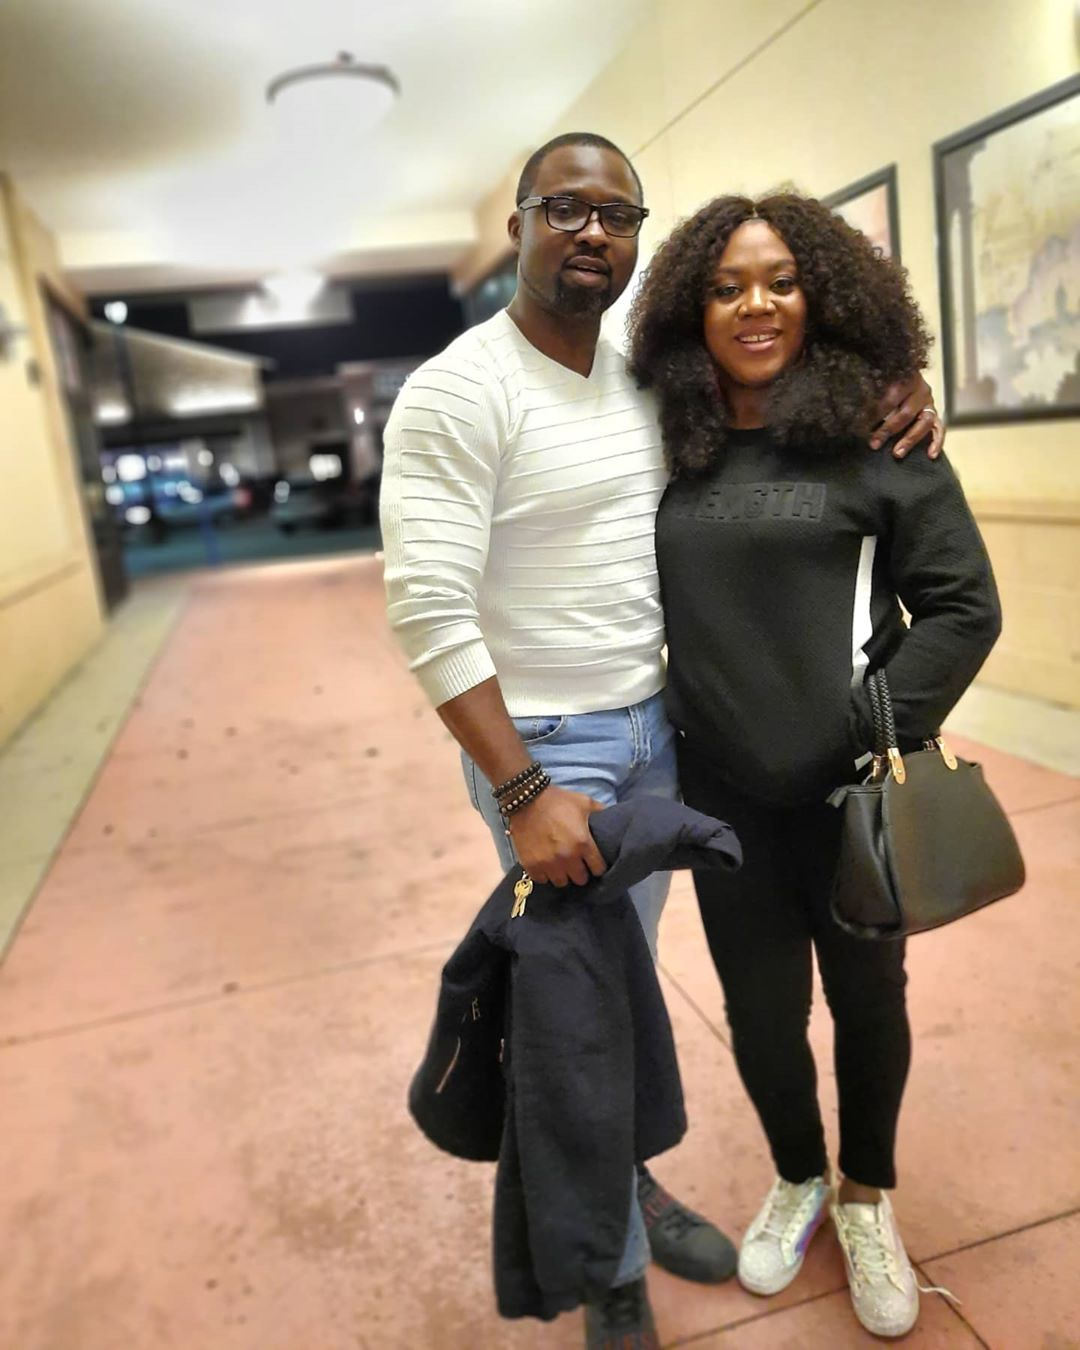 Stella Damasus pictured here with her husband Daniel Ademinokan says she has been spending time with her family during this lockdown (Instagram/Daniel Ademinokan)